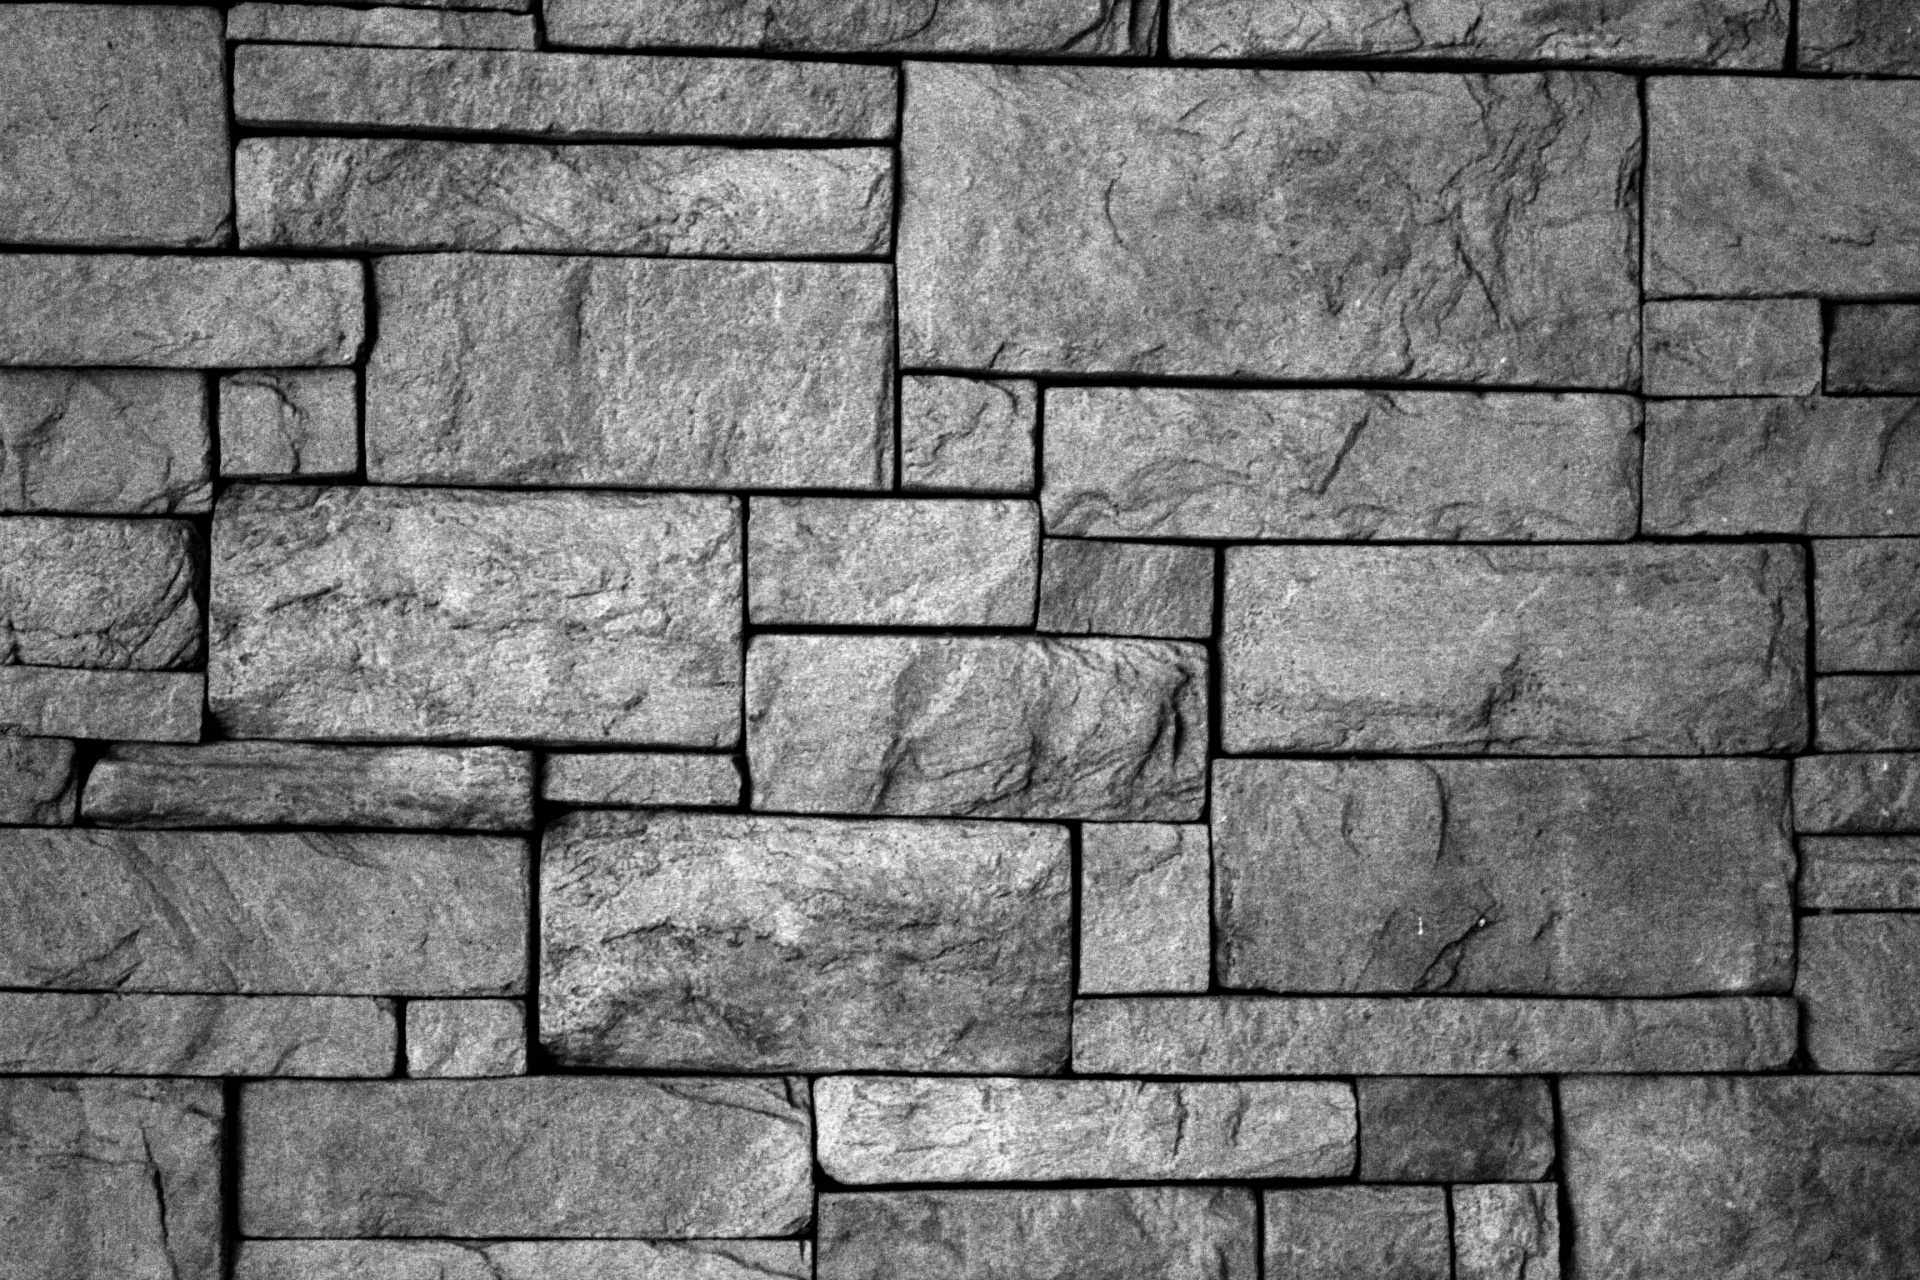 Black Brick Wall Black And White Brick Wall Free Stock Photo Public